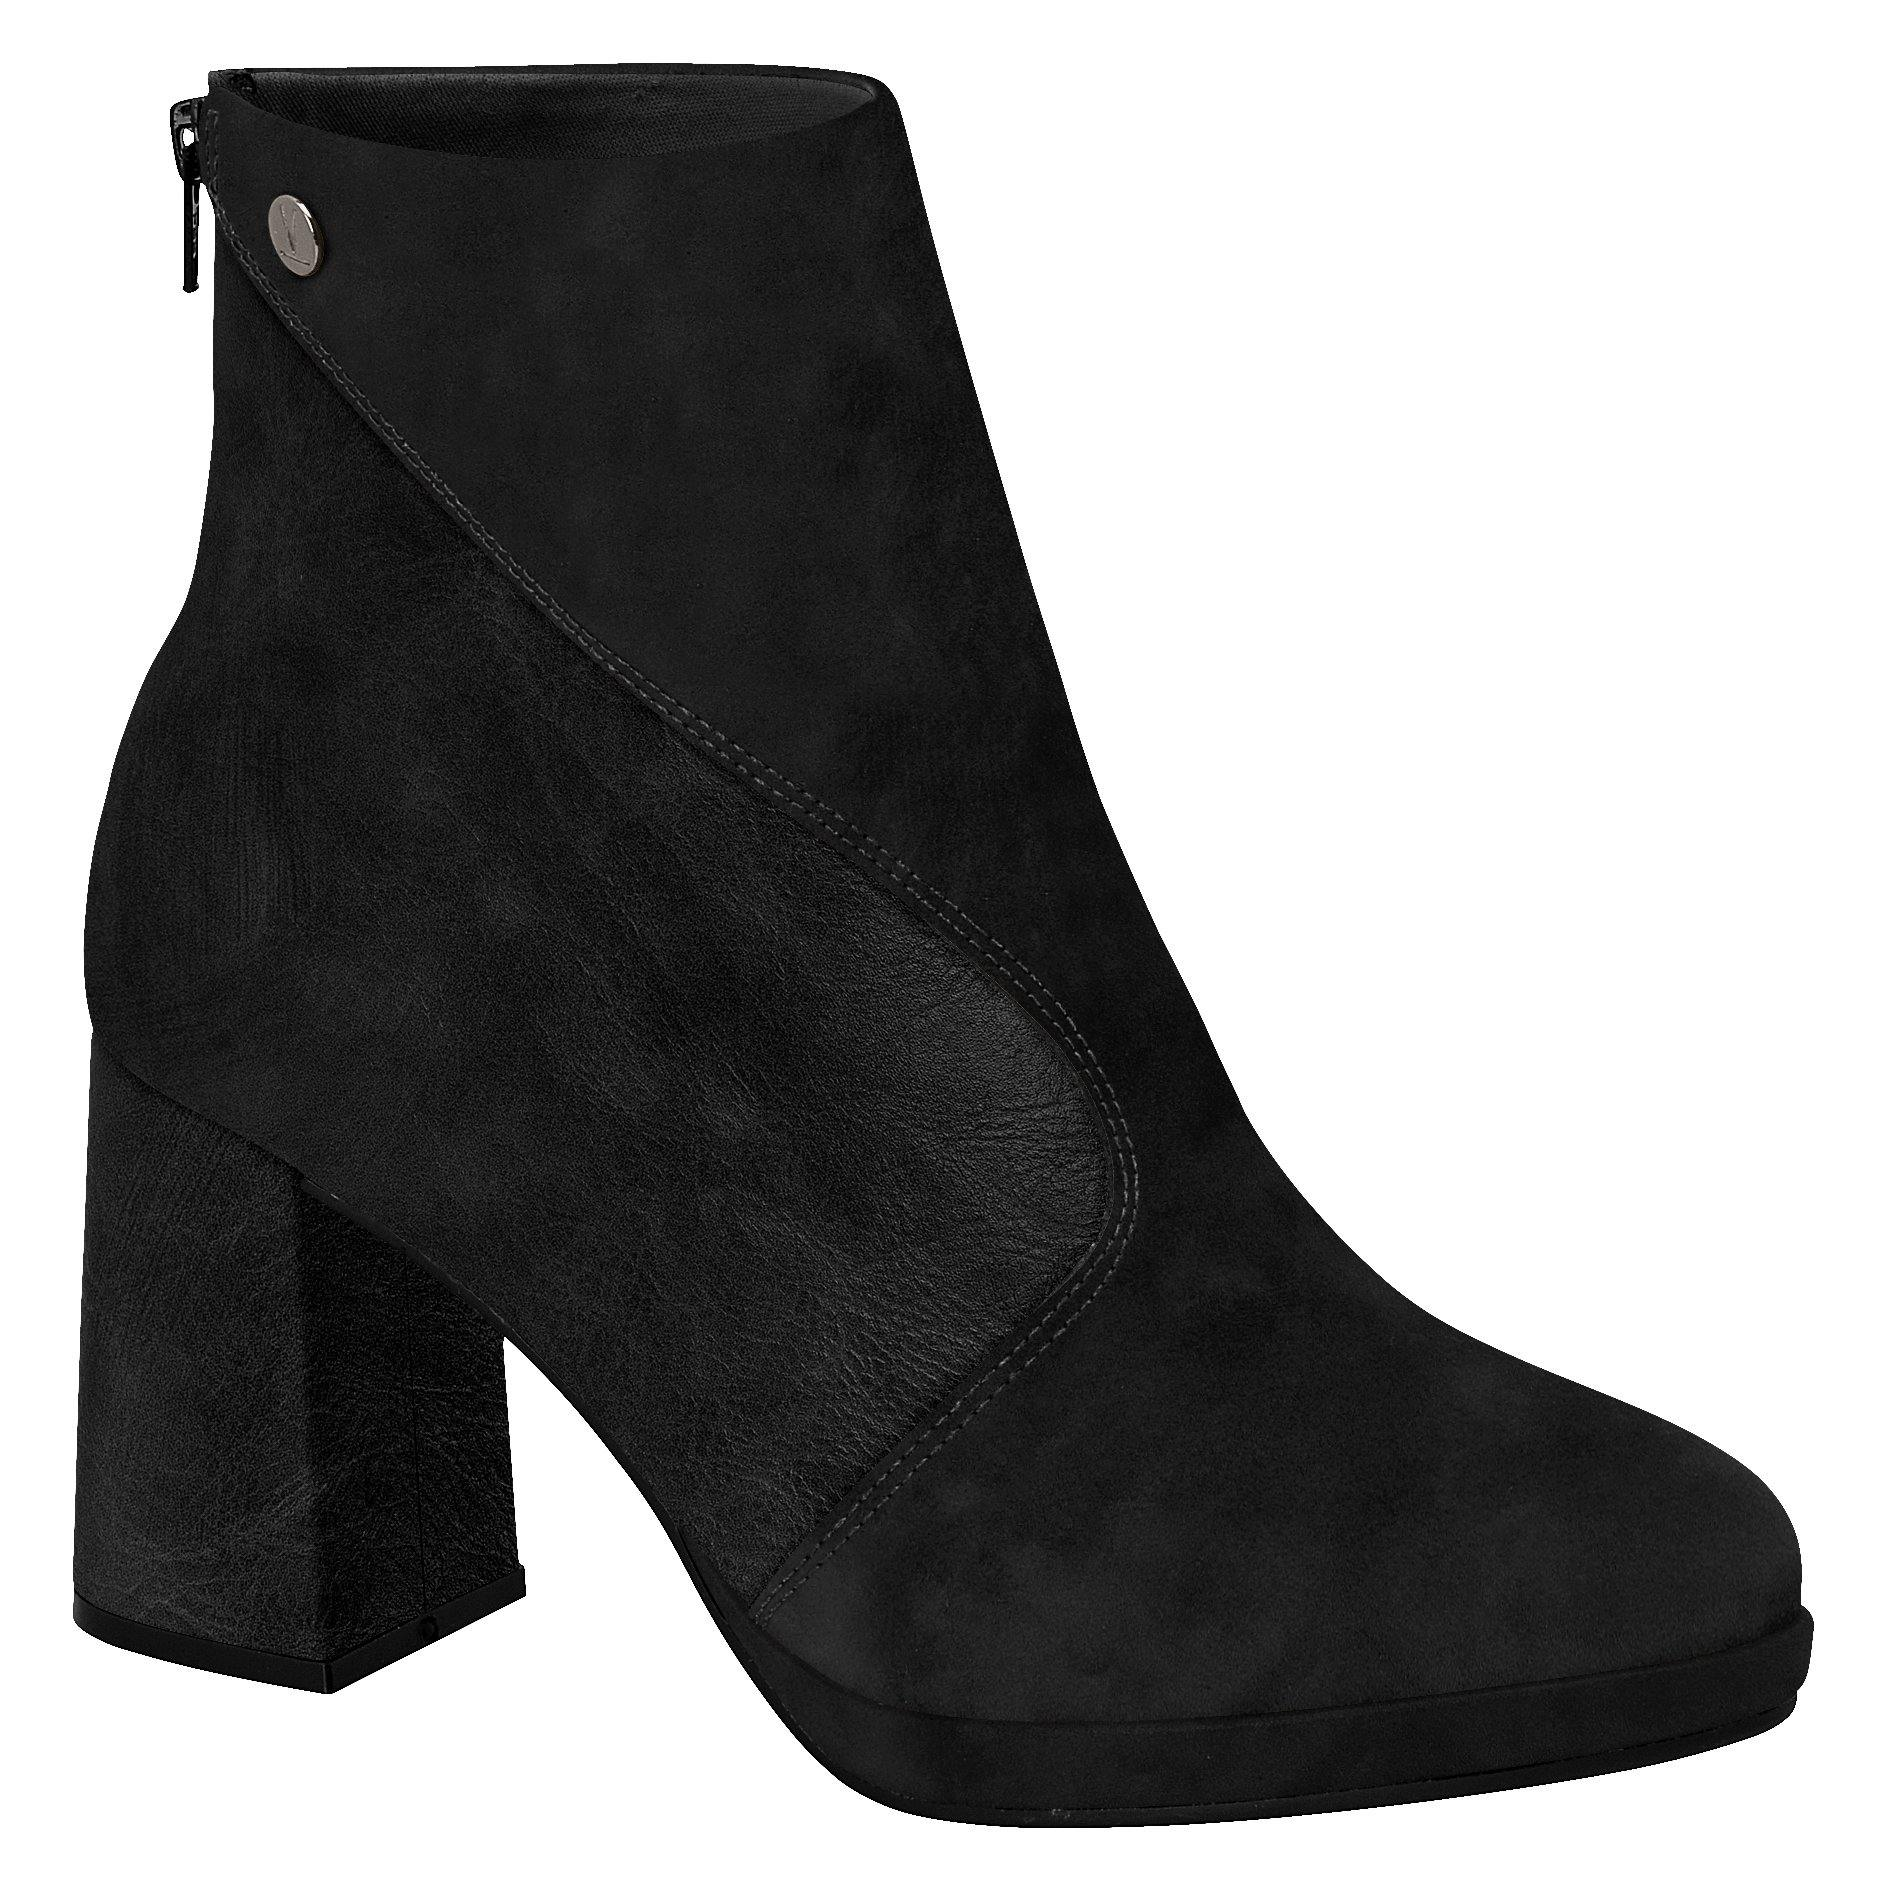 Vizzano 3076-105 Round Toe Block Heel Ankle Boot in Black